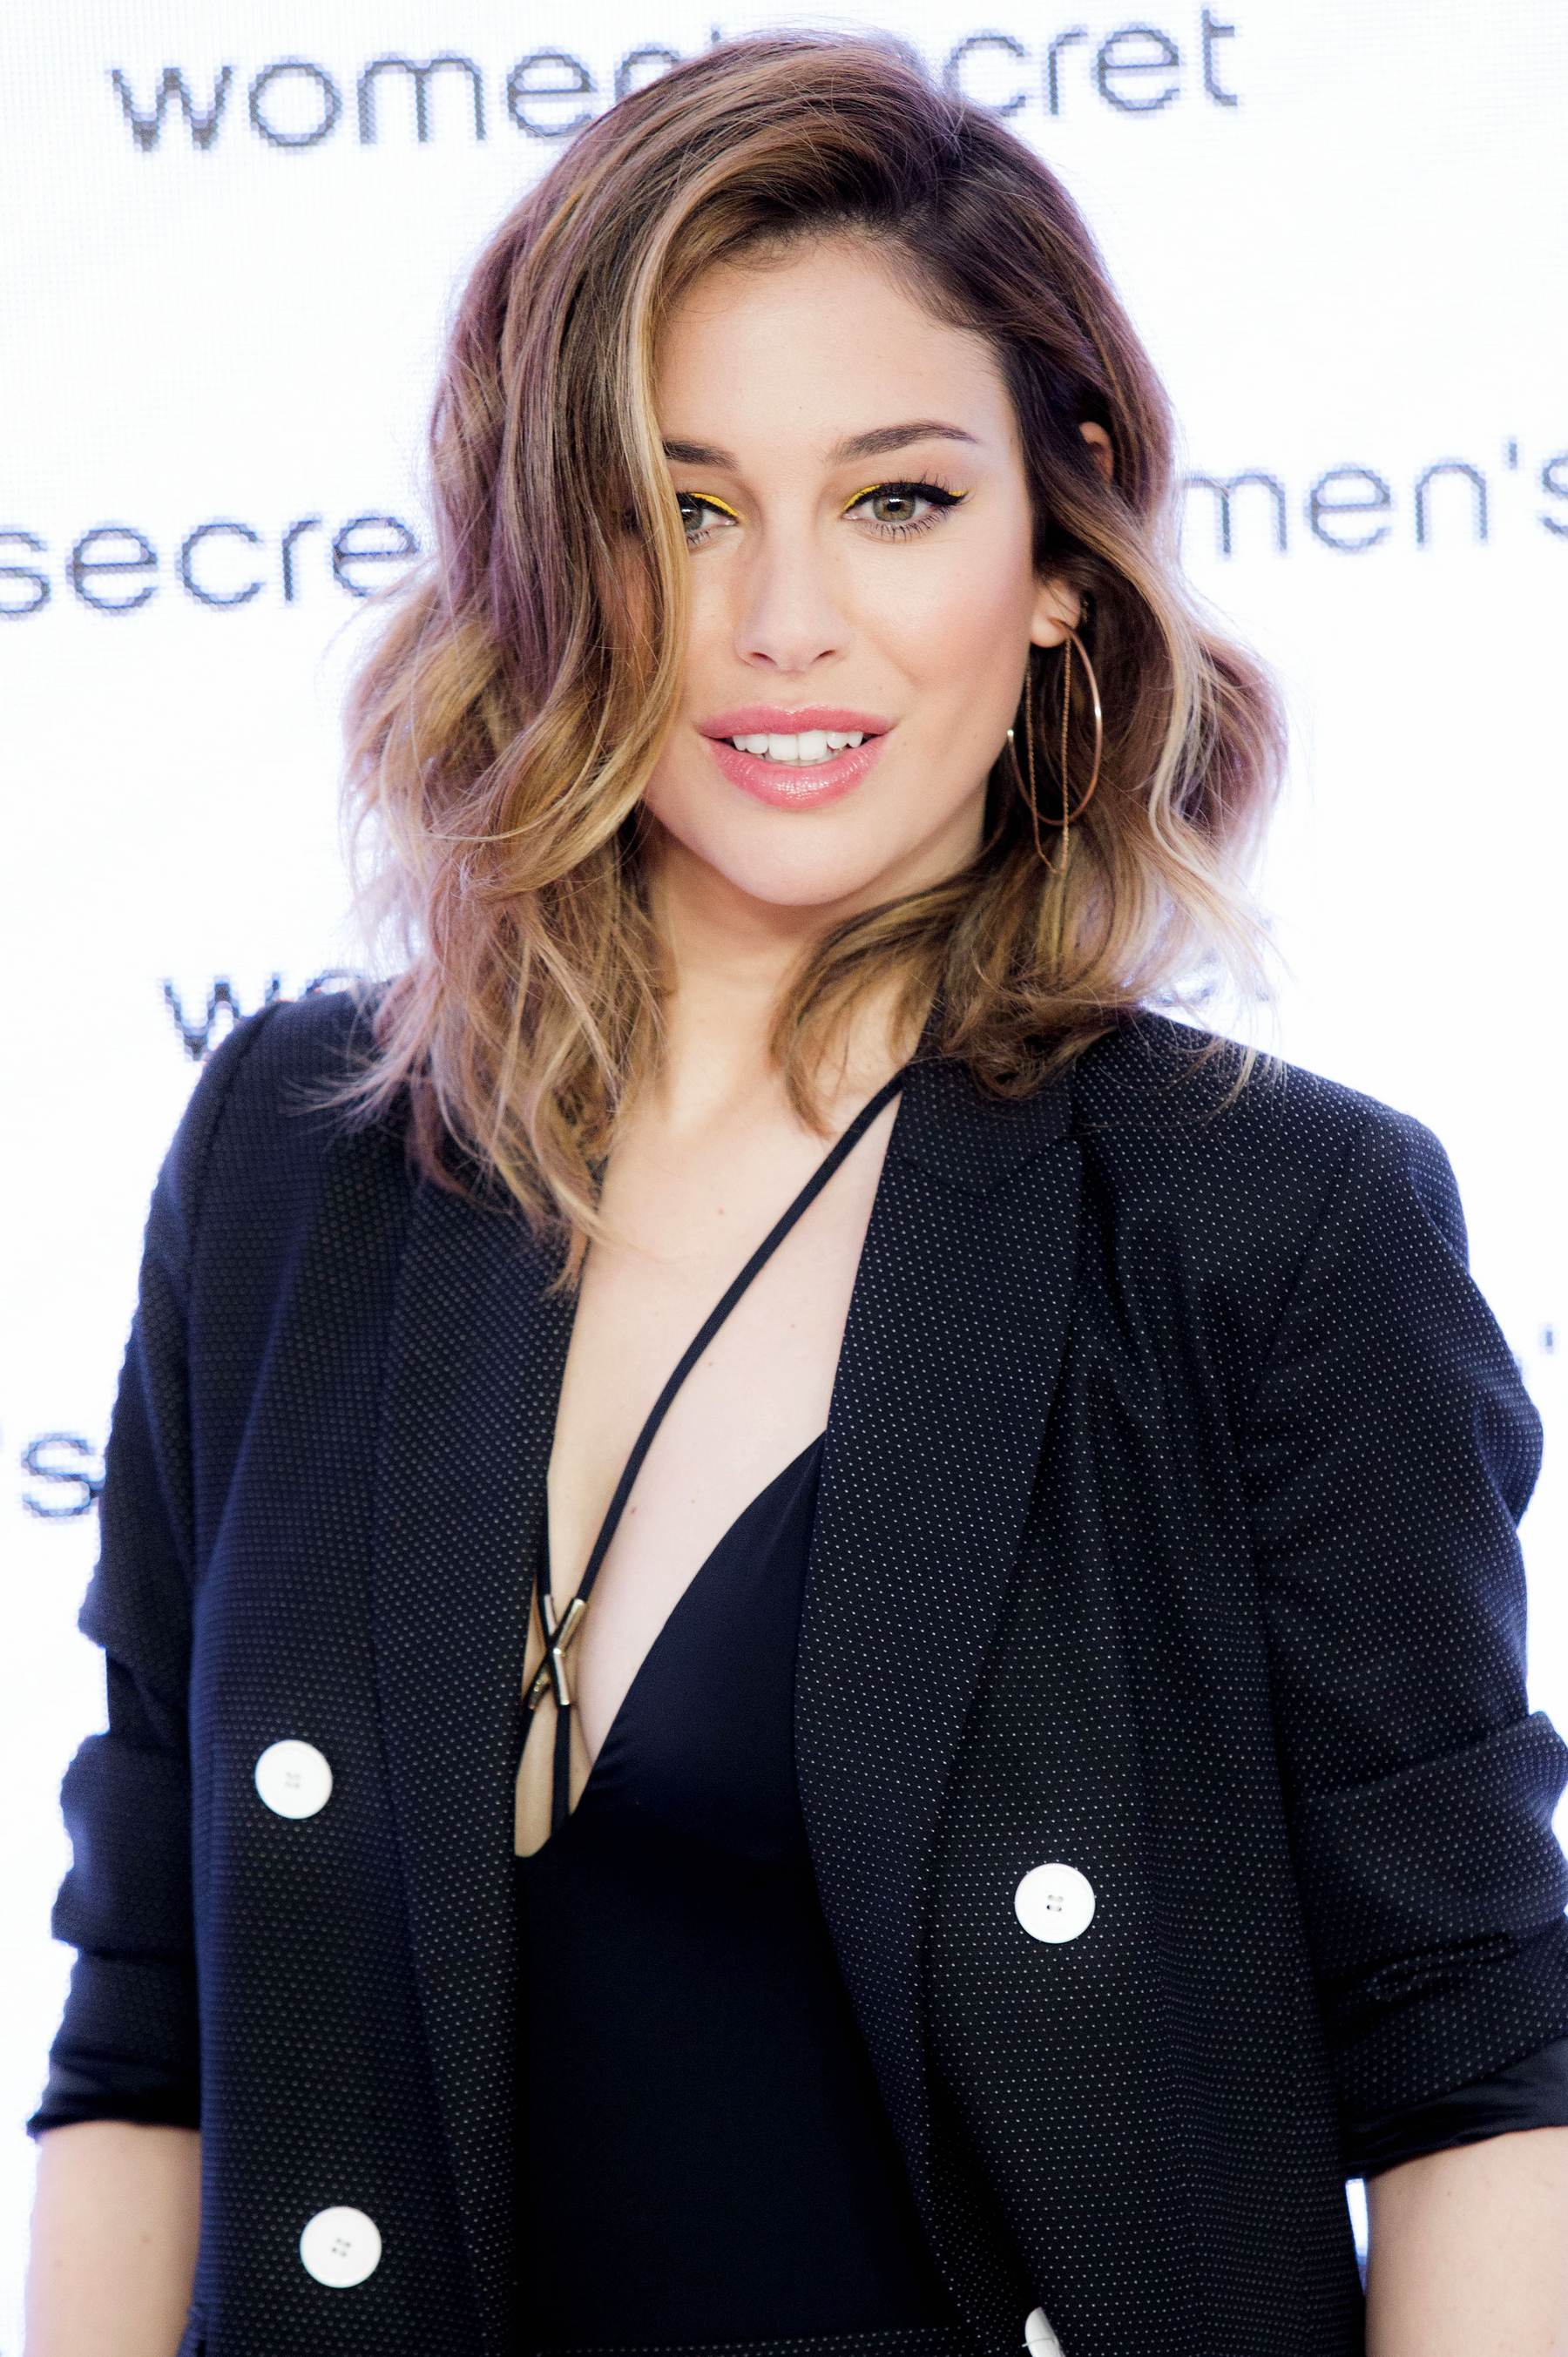 Blanca Suarez nudes (67 pics), foto Topless, YouTube, cleavage 2020